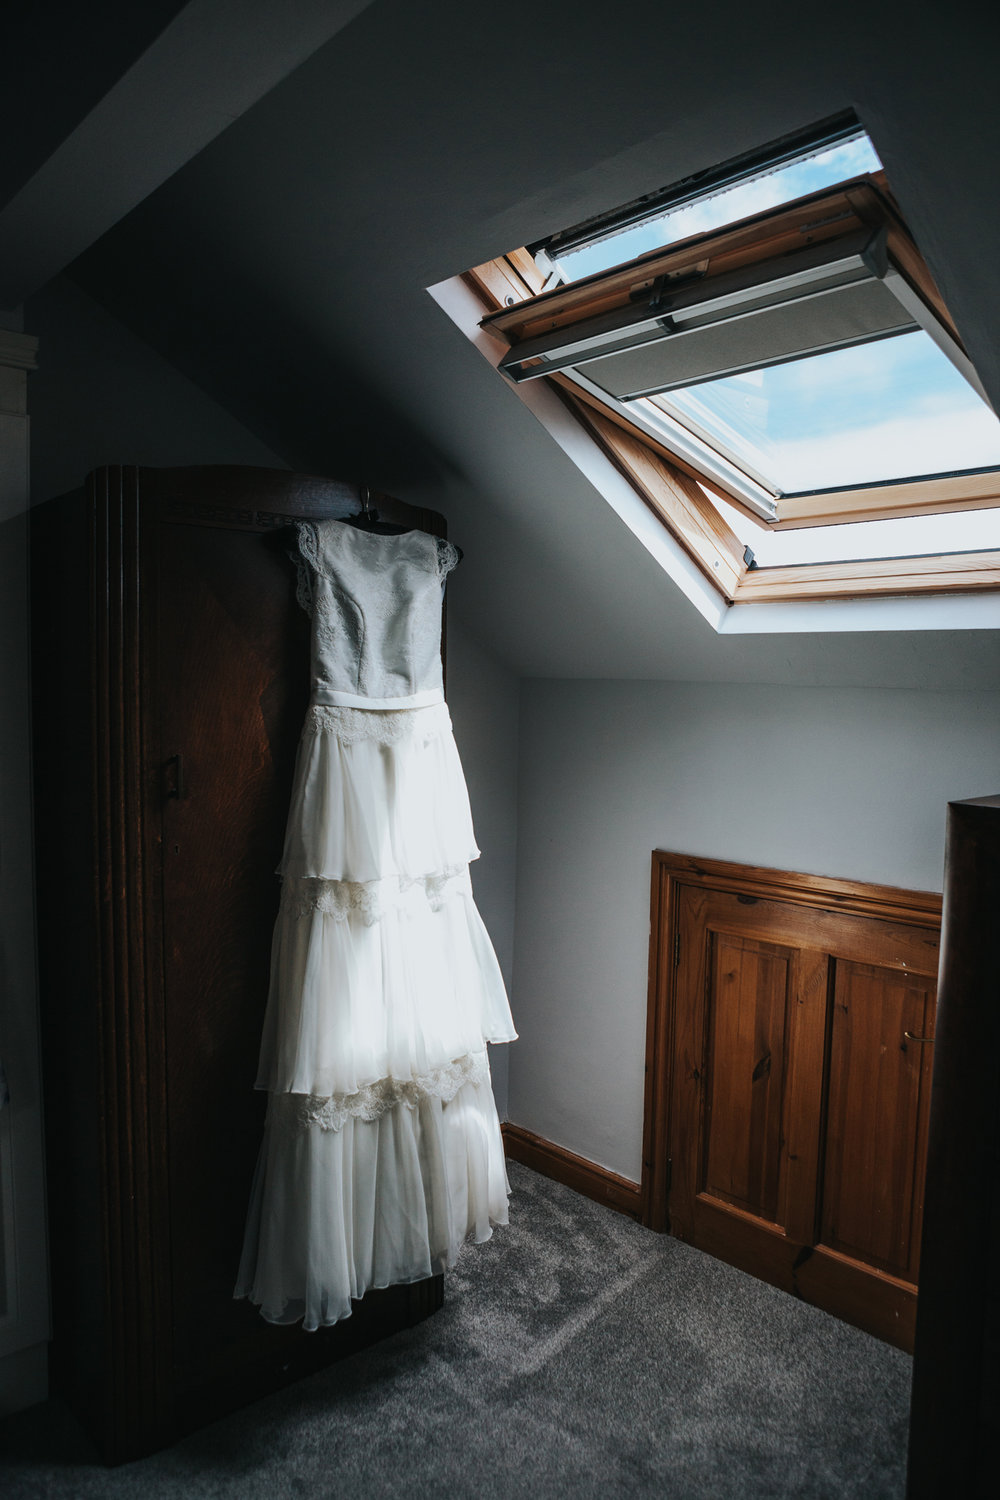 Brides dress hangs on wardrobe, Manchester.